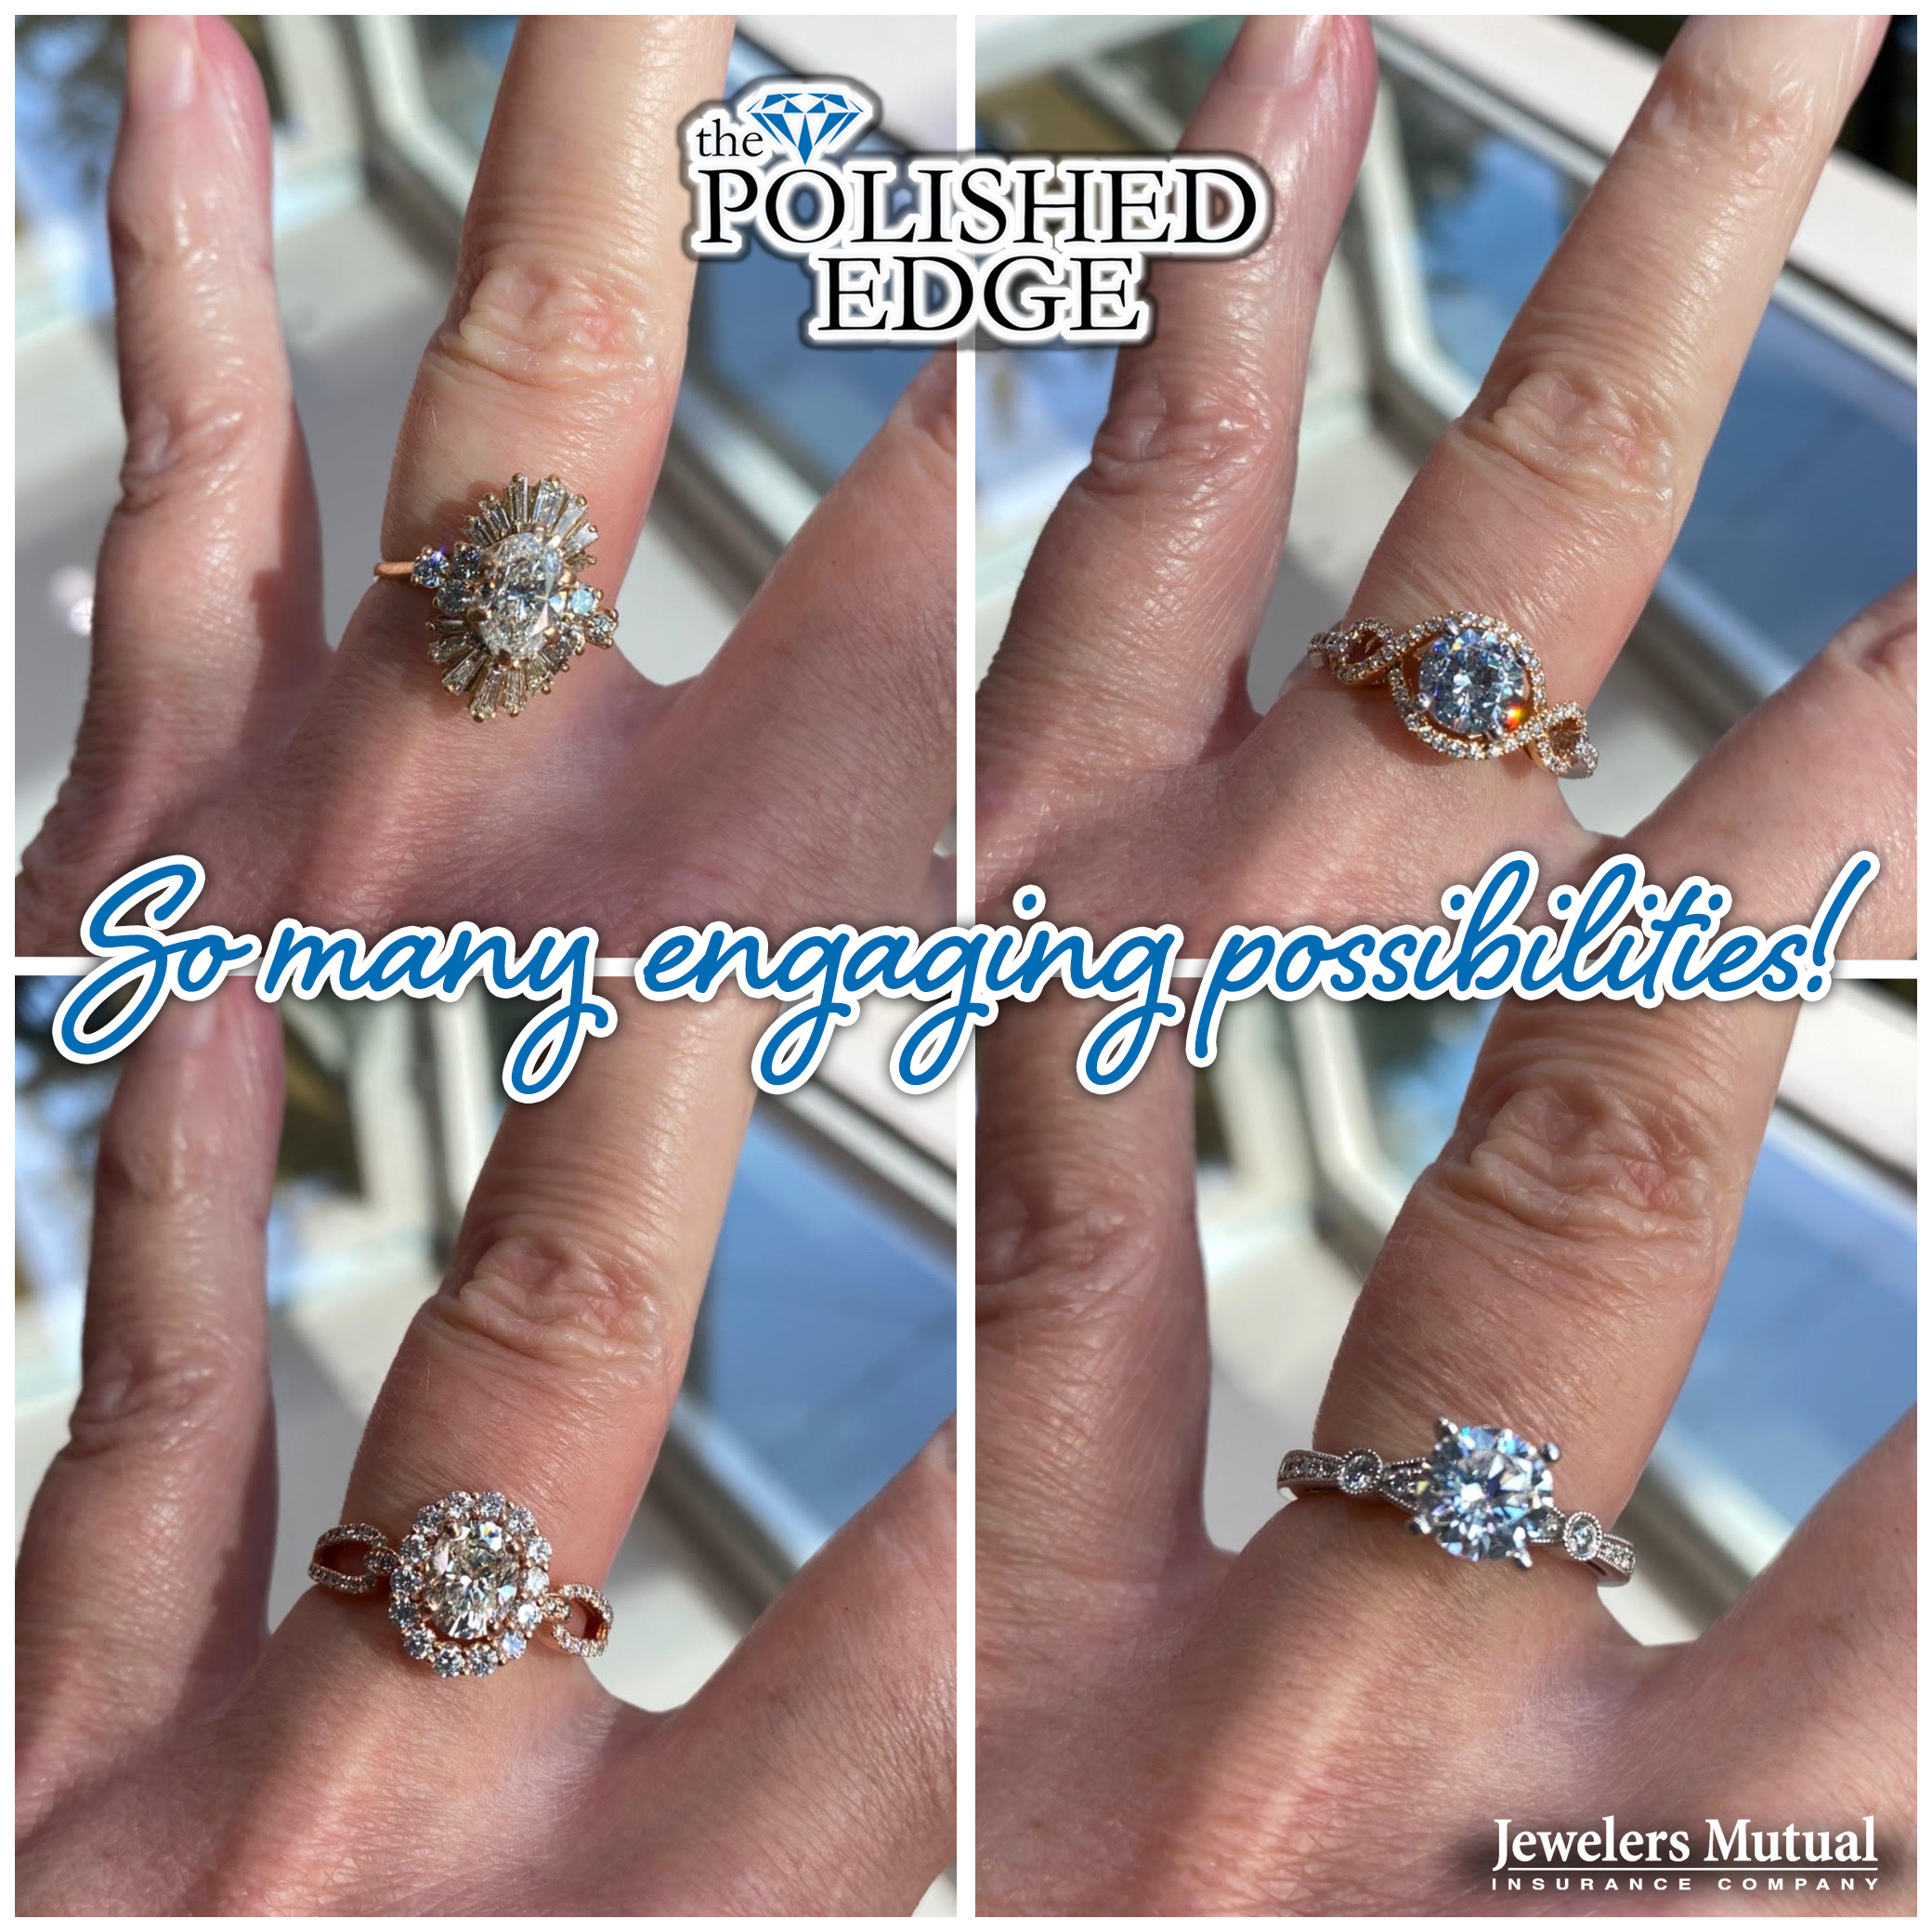 Planning a Holiday Engagement? Contact us or come into the store to view our selection. Every ring comes with a 1-year guarantee or lifetime guarantee if insured through our partner Jewelers Mutual. Free parking available at The President Hilton parking garage.